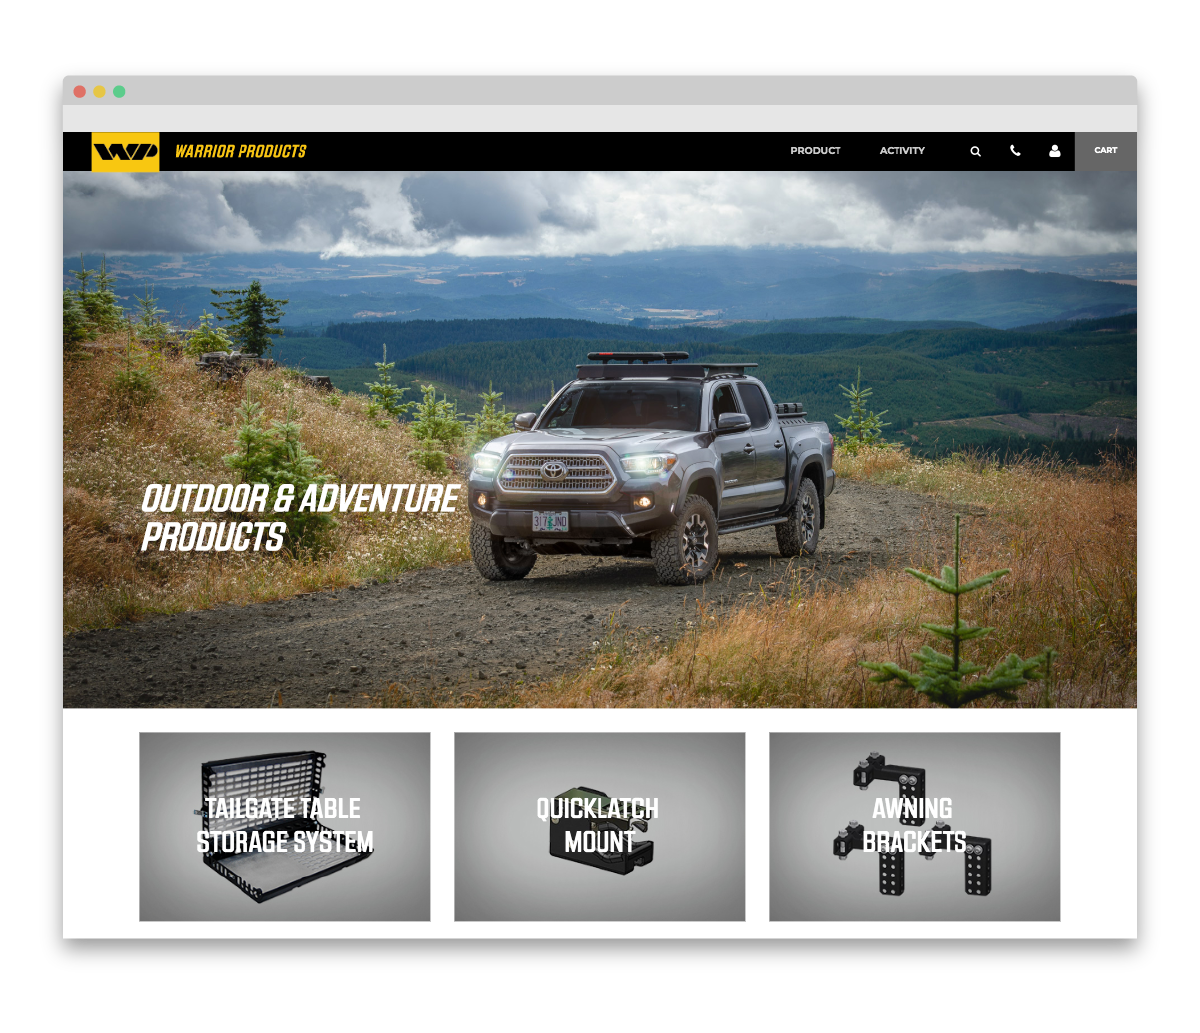 Warrior Products custom landing page - outdoor